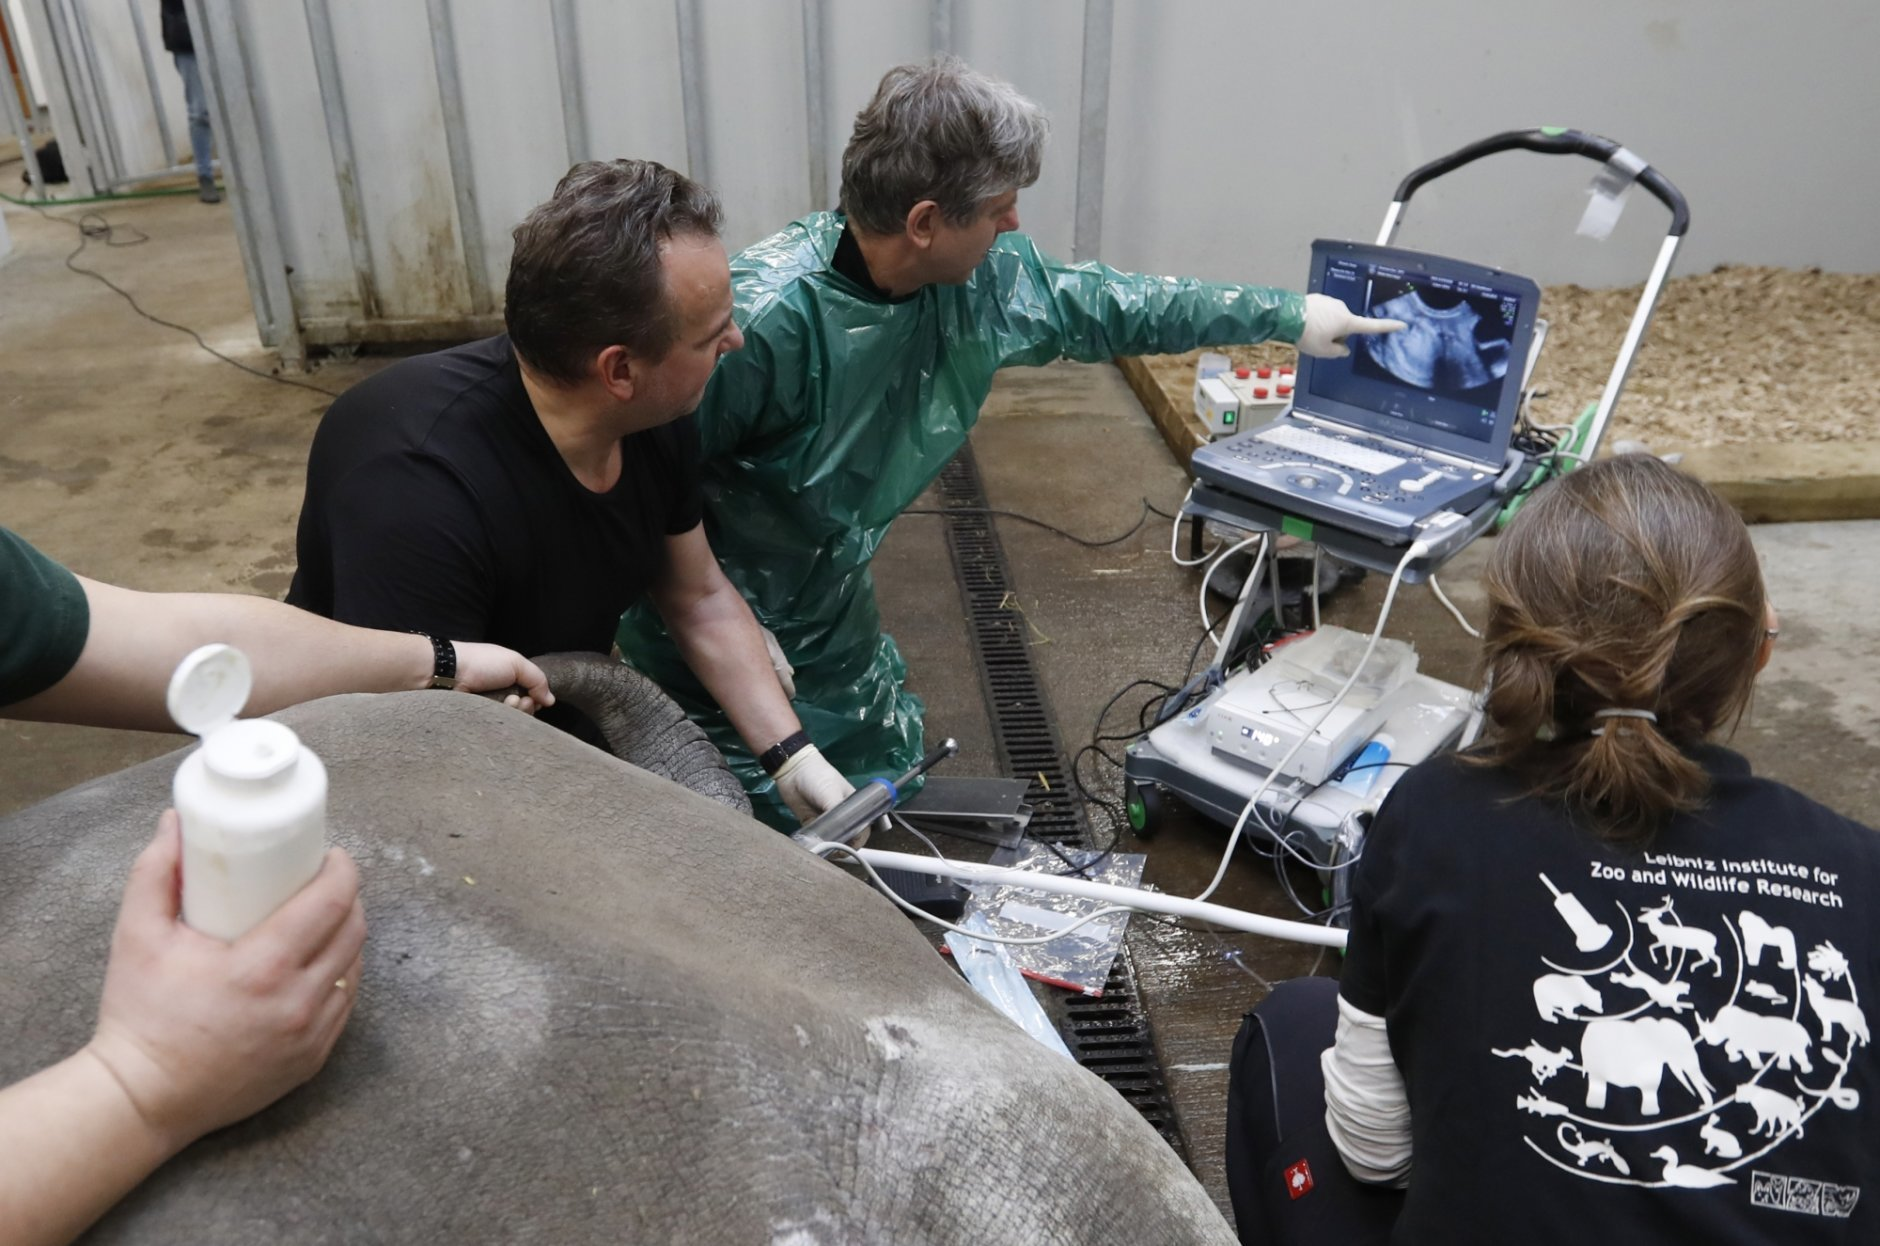 Team of experts led by Thomas Hildebrandt, center, of the Leibniz Institute for Zoo and Wildlife Research in Berlin, harvests eggs from female southern white rhino, 17-year-old Hope, at a zoo park in Chorzow, Poland, Wednesday, Feb. 13, 2019. (AP Photo/Petr David Josek)